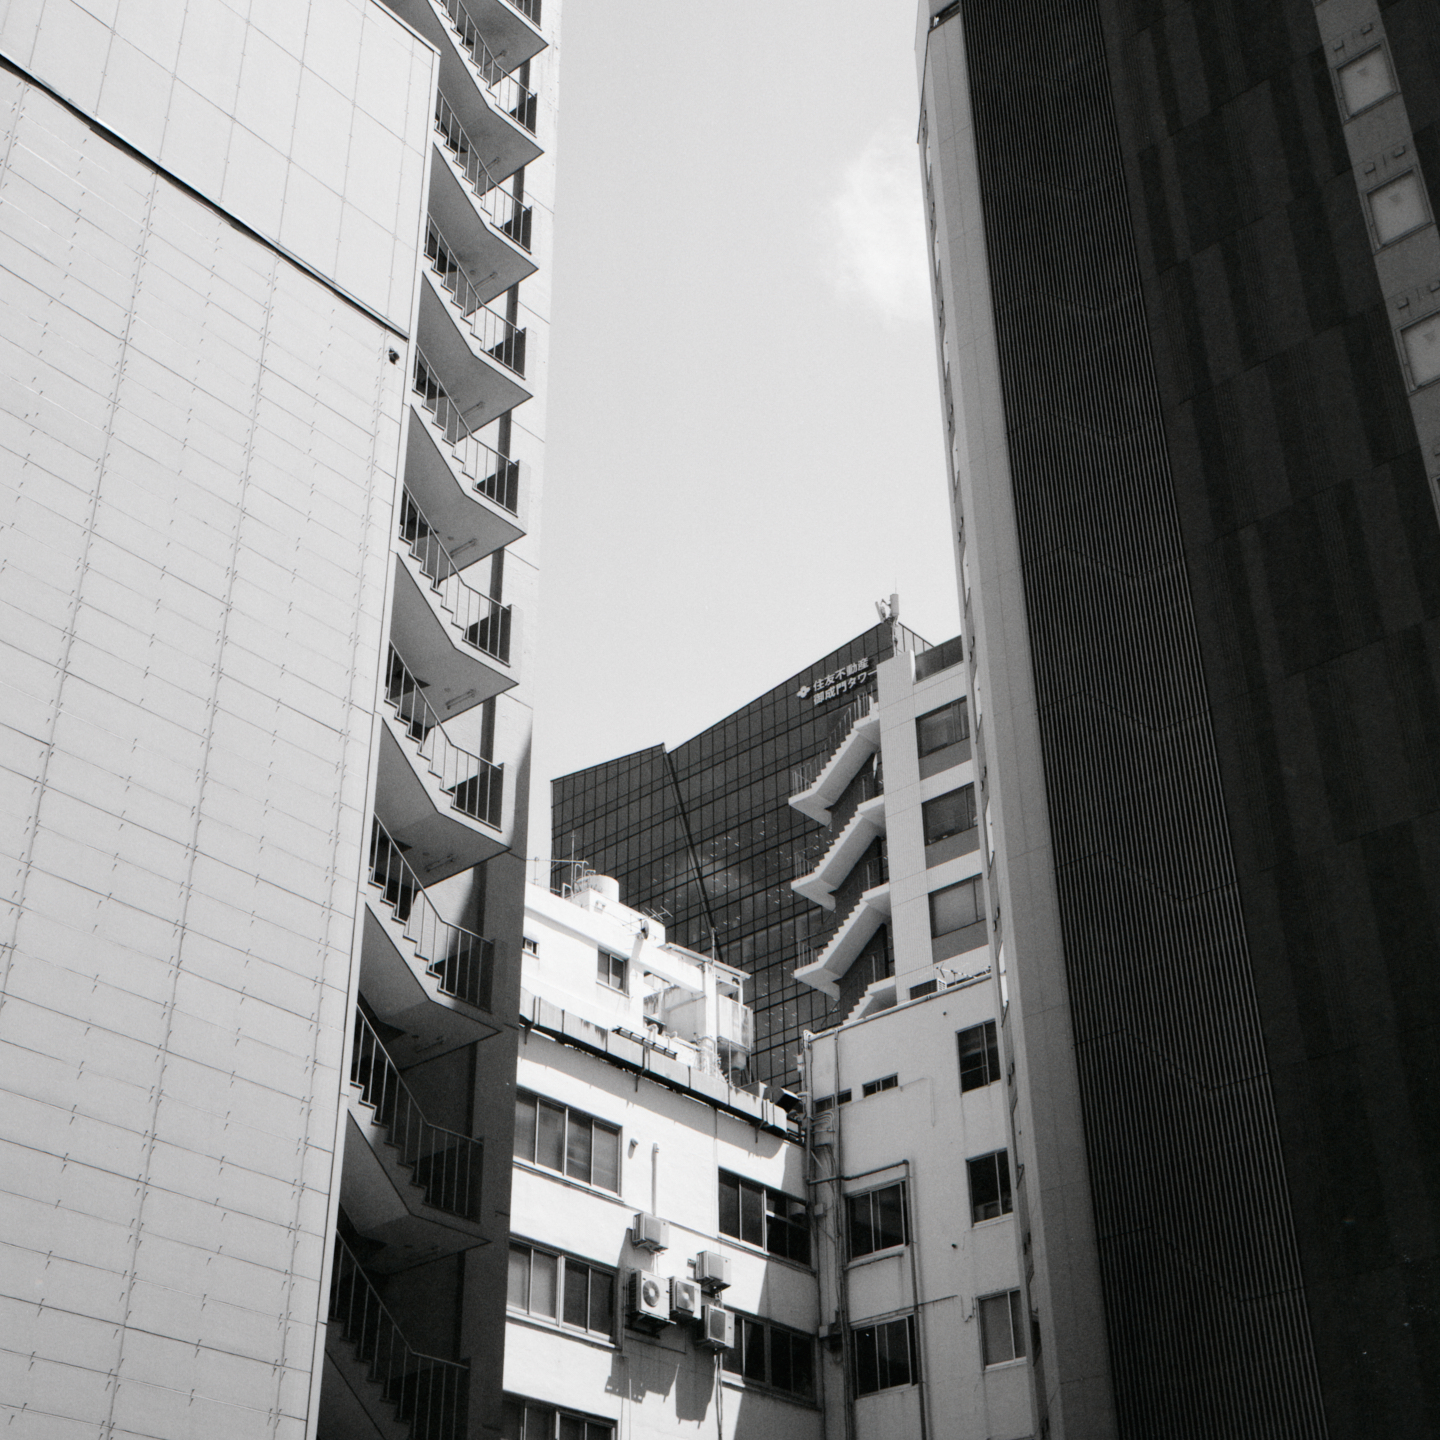 Layers of Buildings and Stairs